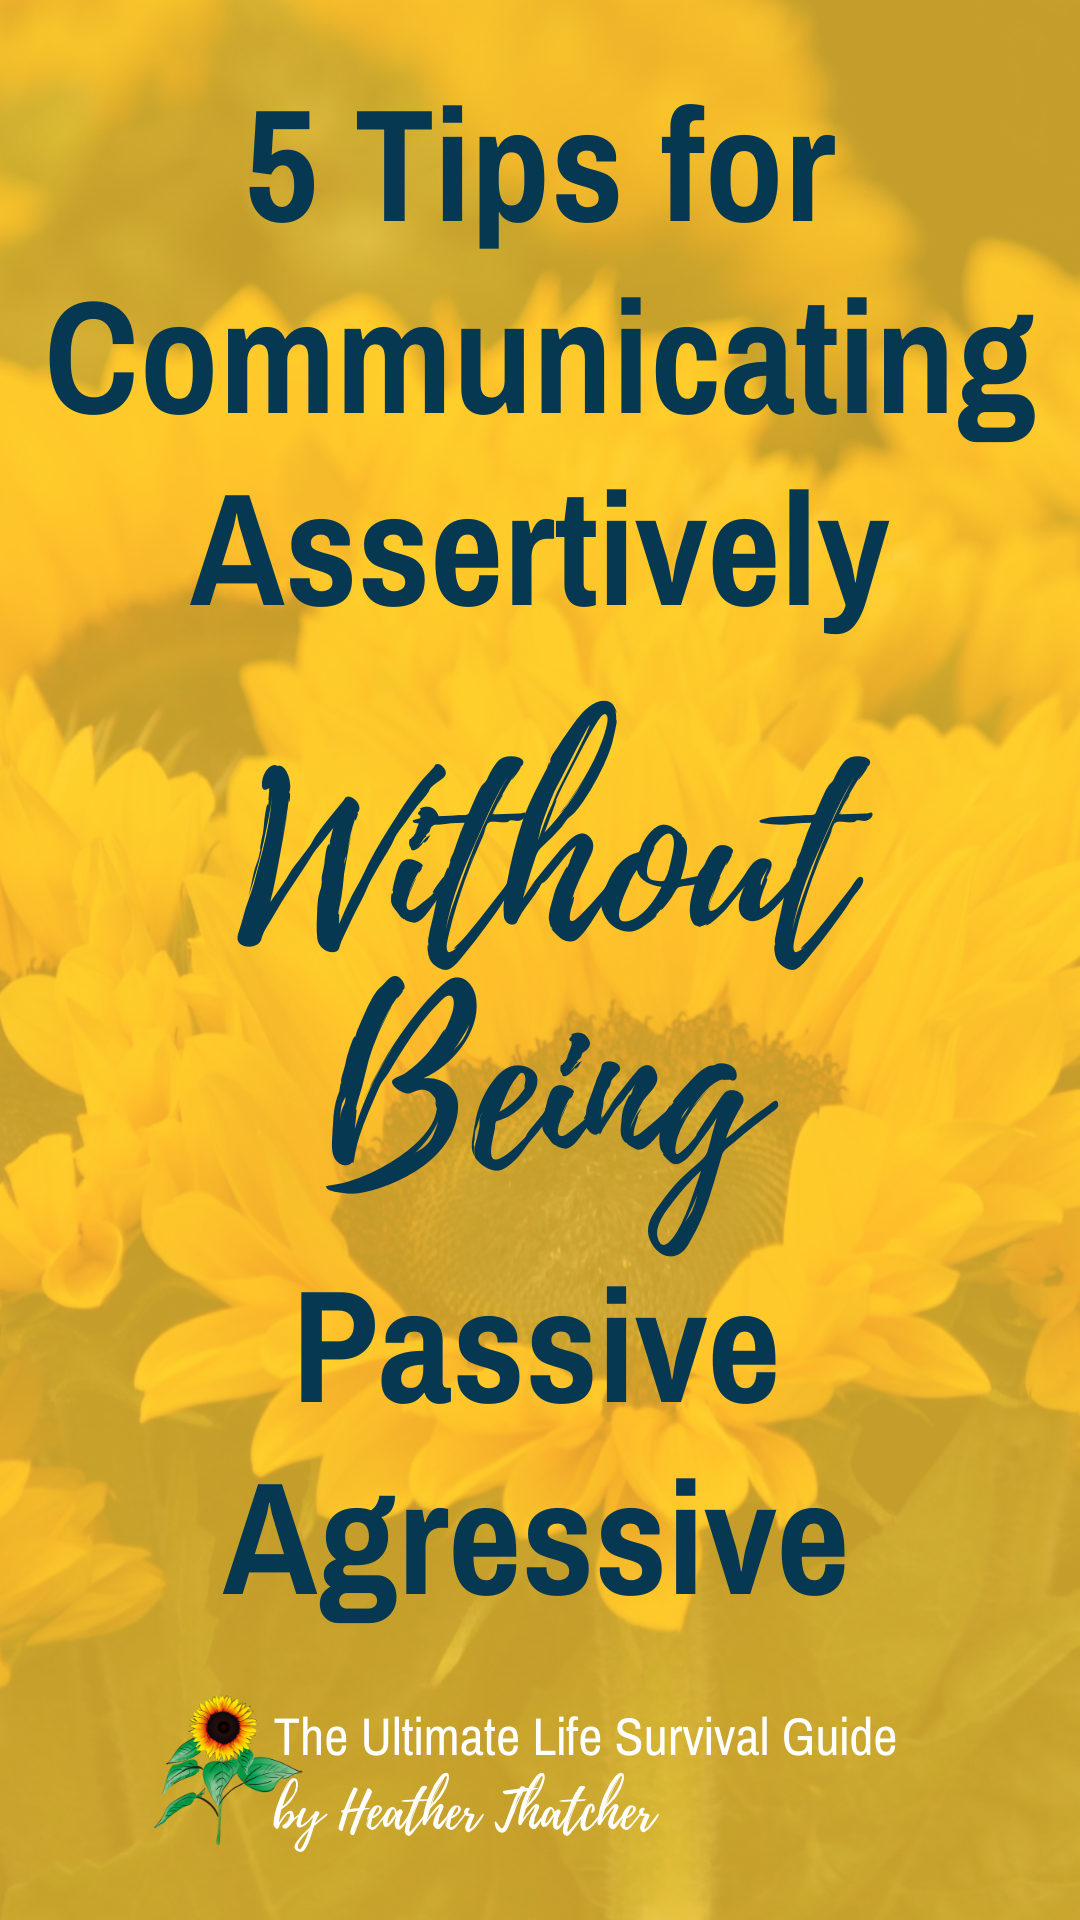 5 Tips For Communicating Assertively Without Being Passive